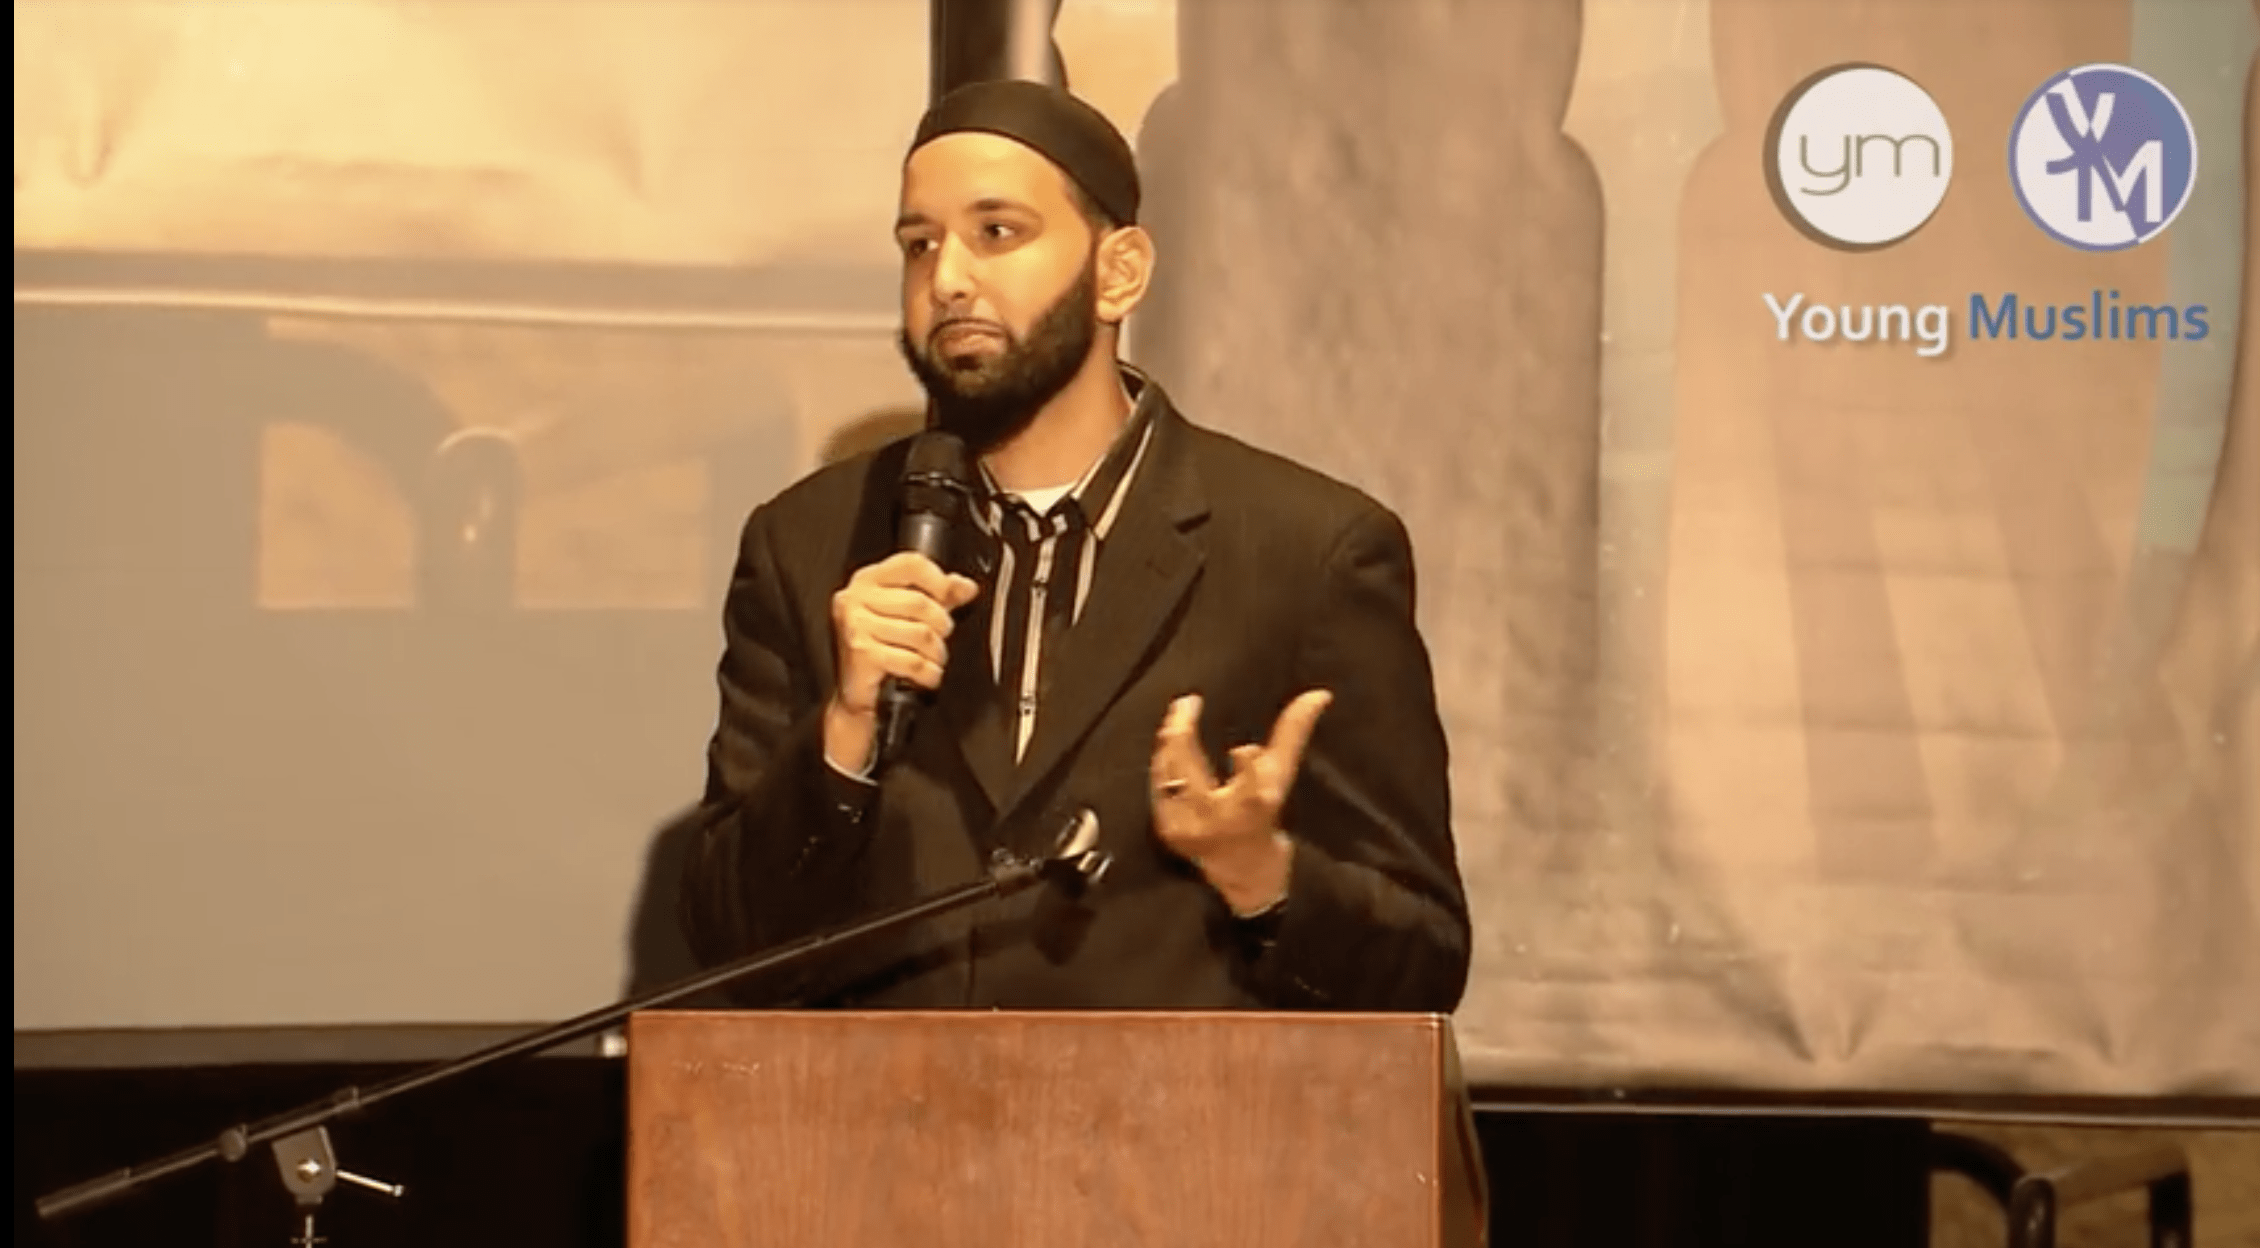 Omar Suleiman – Pitfalls of Despair